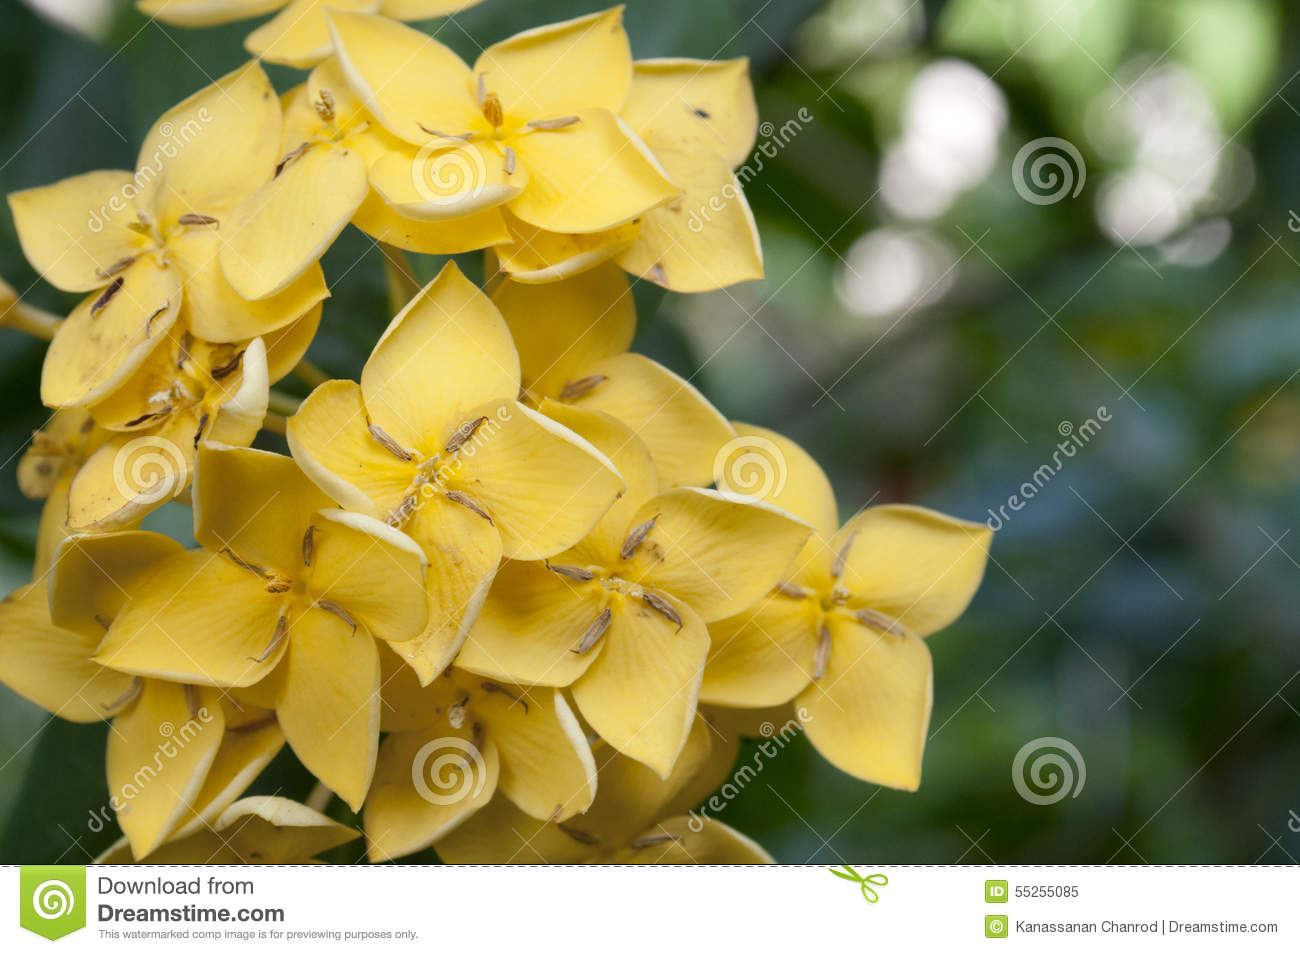 Yellow west indian jasmine stock image image of yellow 55255085 yellow west indian jasmine flowers with its leaves on its plant izmirmasajfo